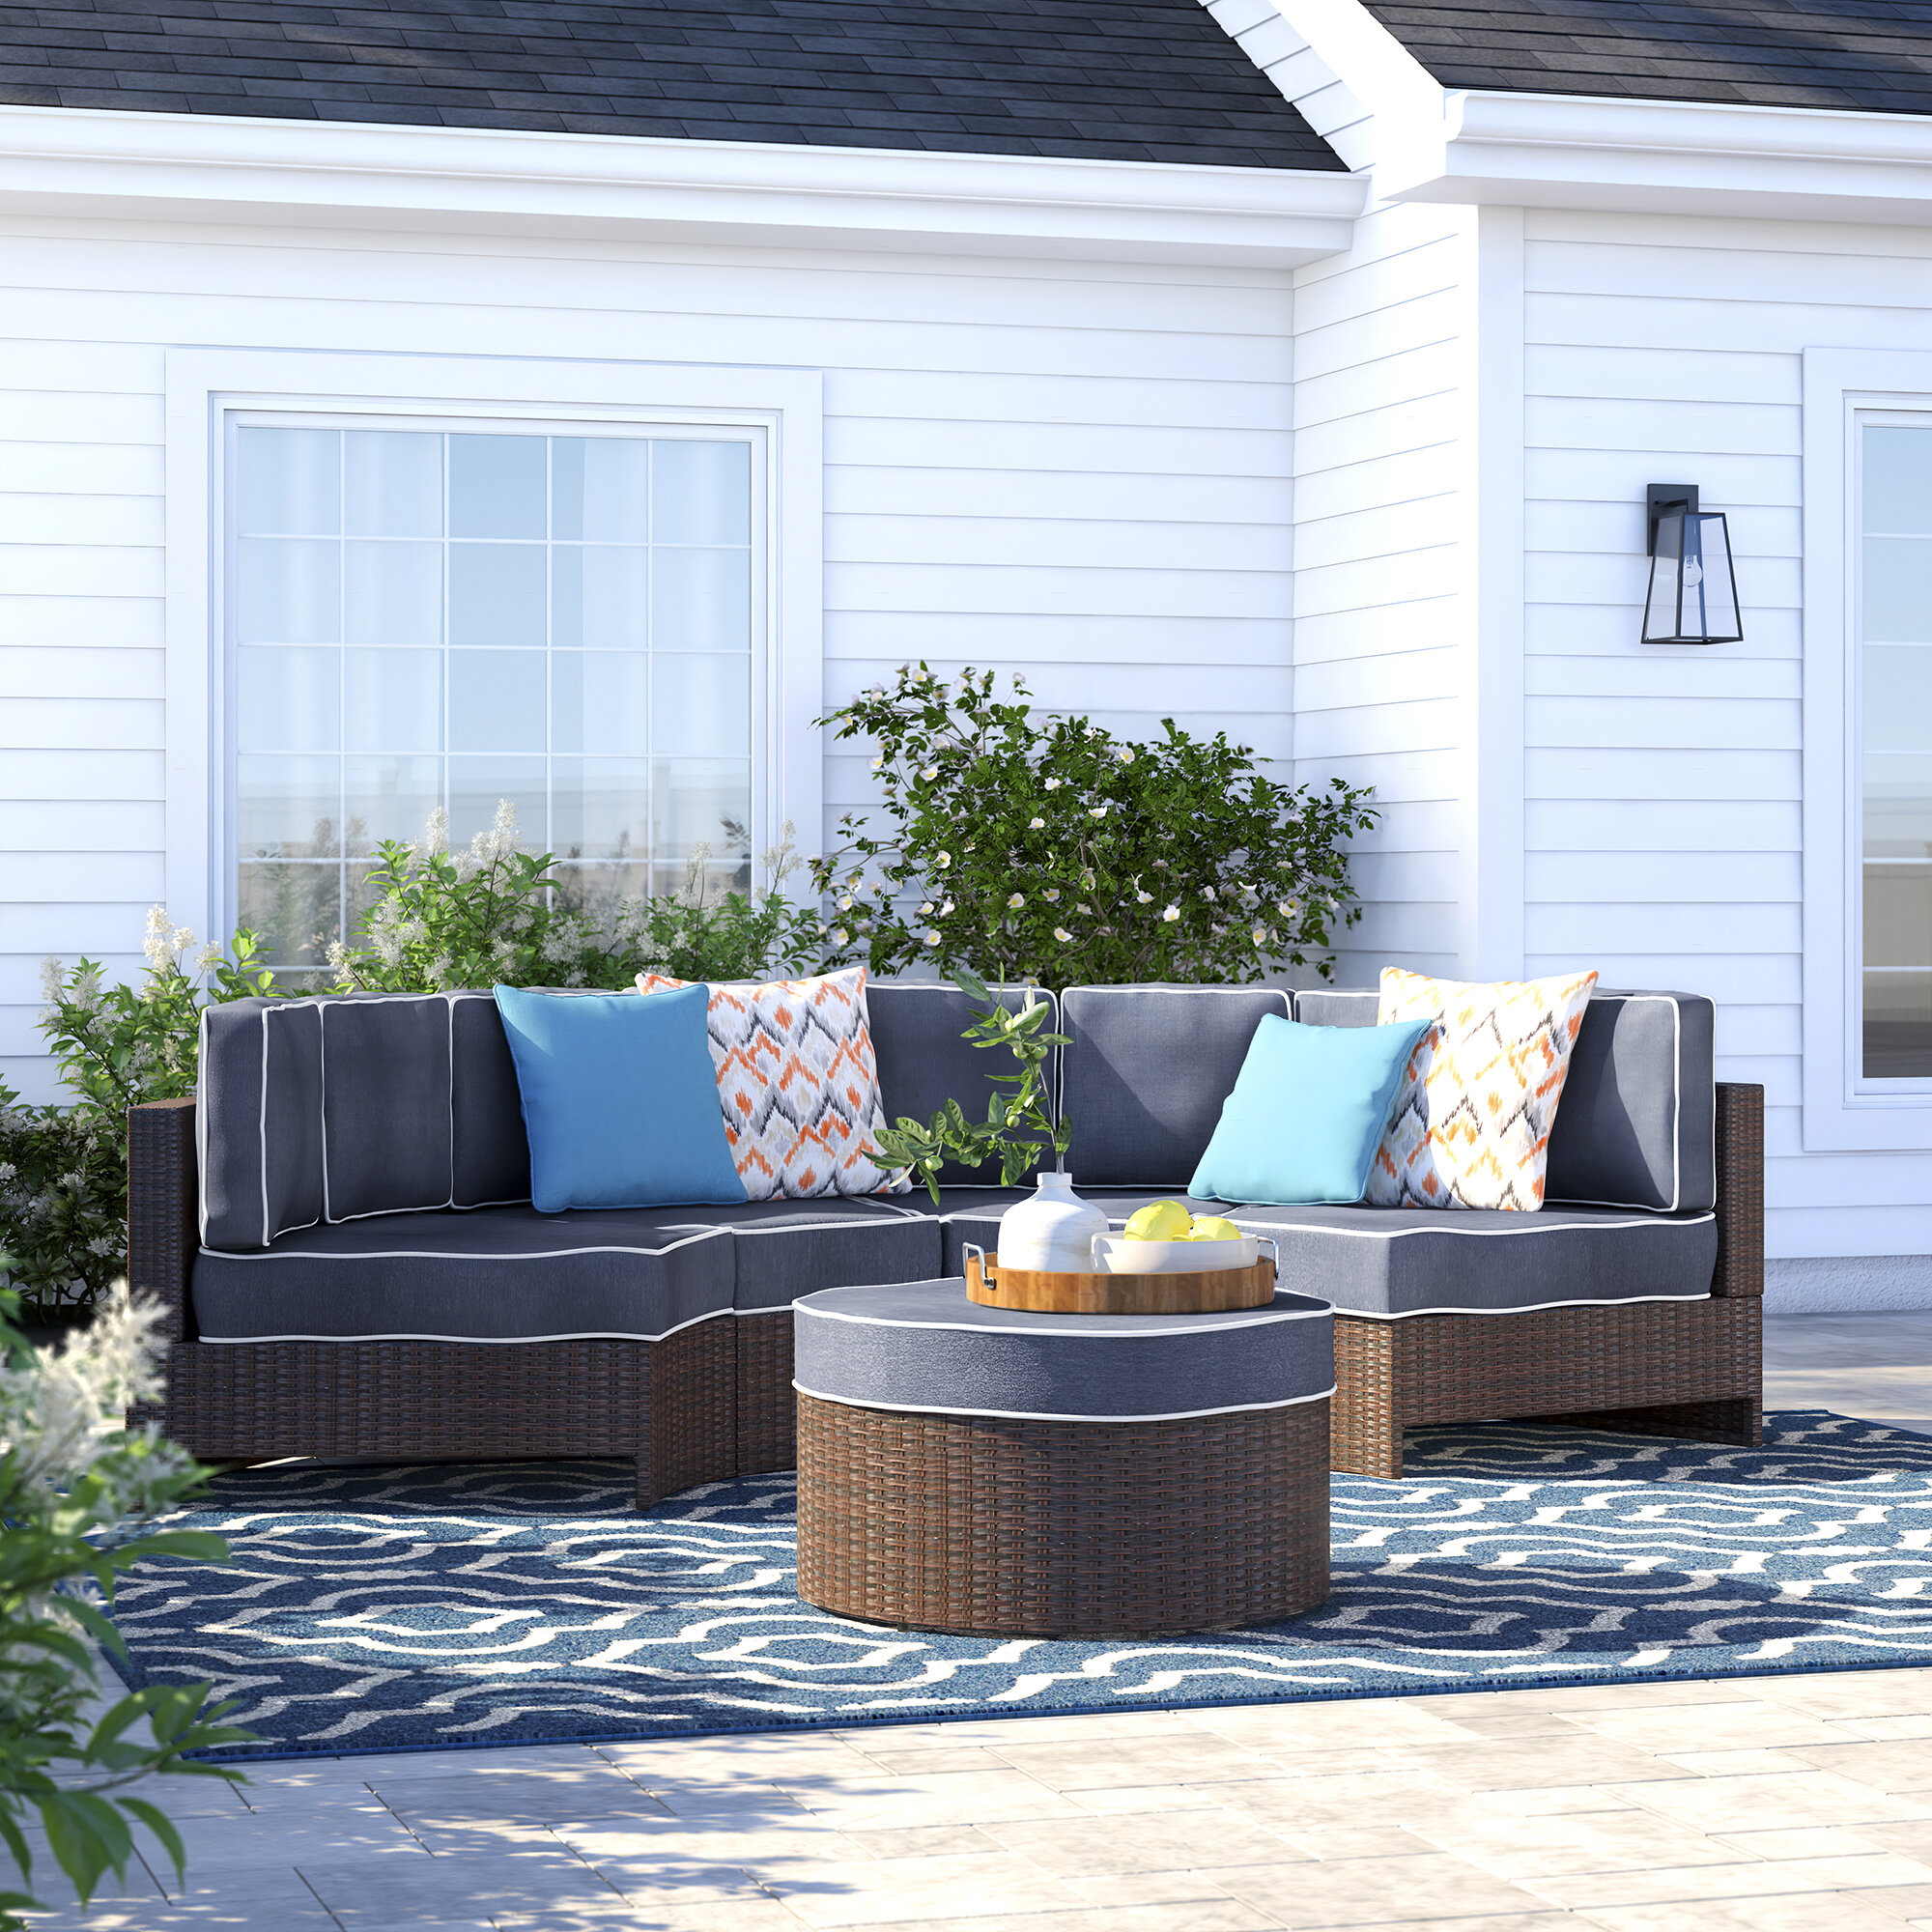 Sol 72 Outdoor Bermuda 5 Piece Rattan Sectional Seating Group With Cushions Wayfair